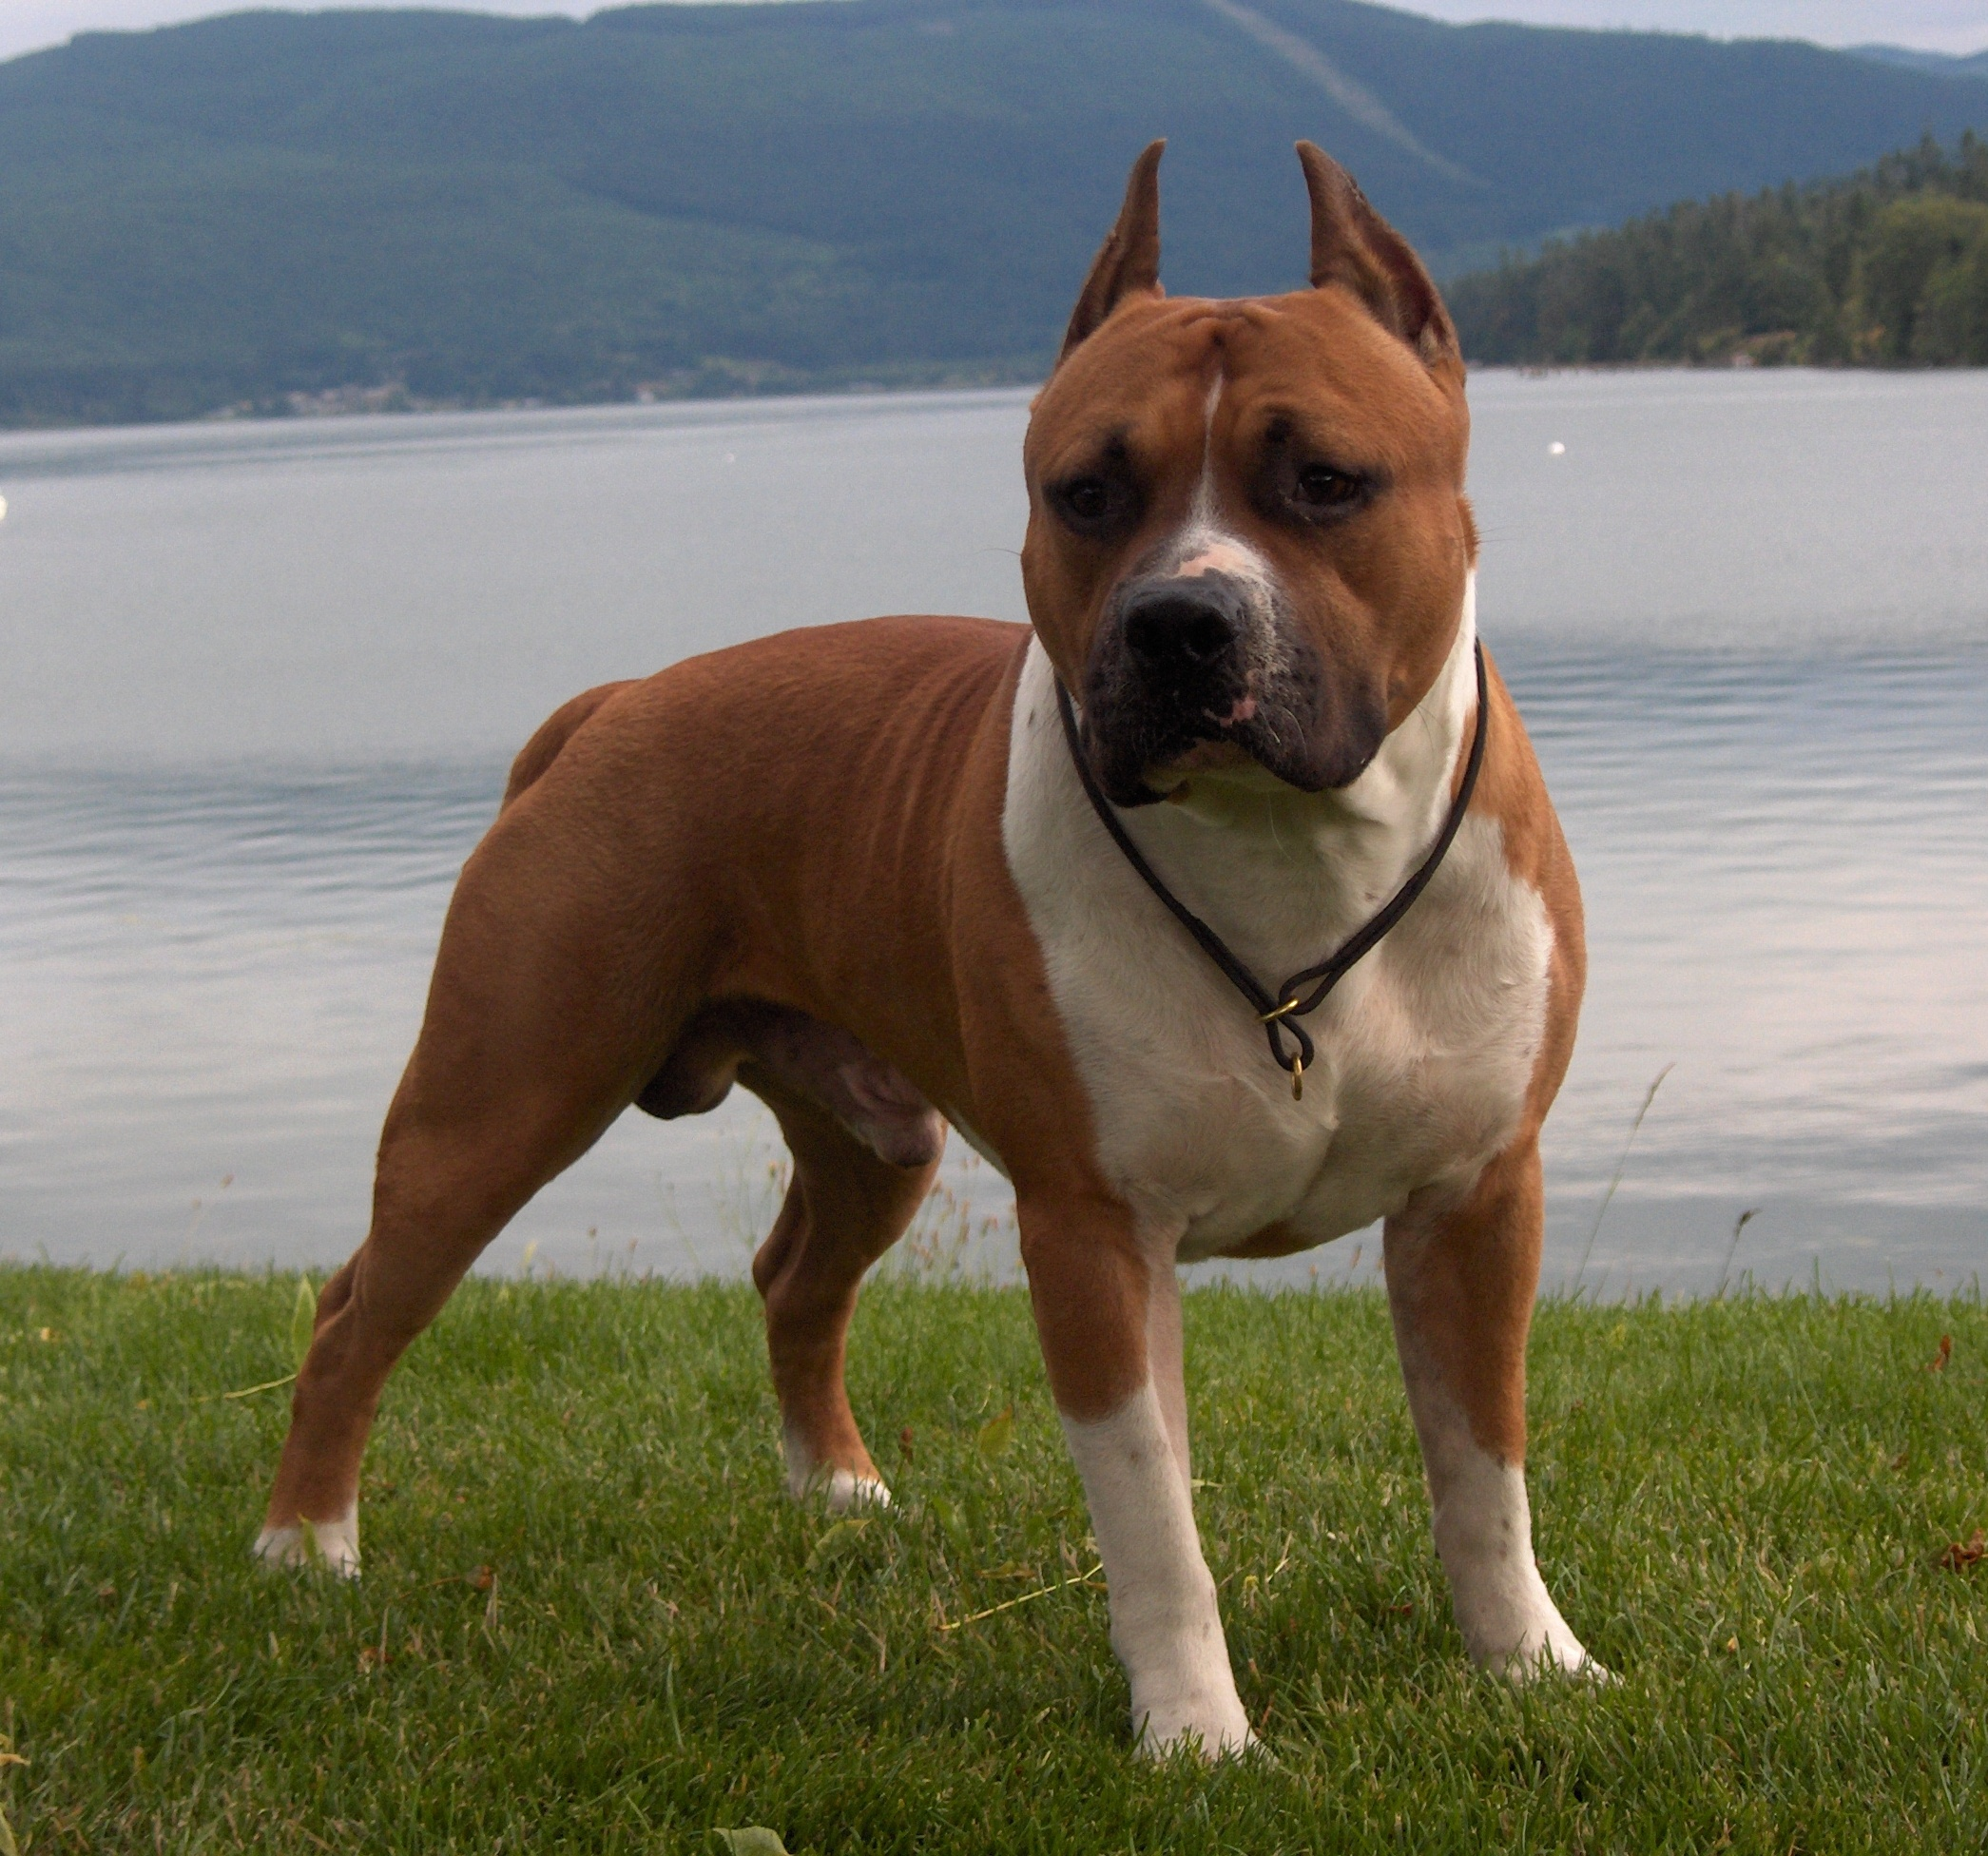 American Staffordshire Terrier at Lake photo and wallpaper. Beautiful